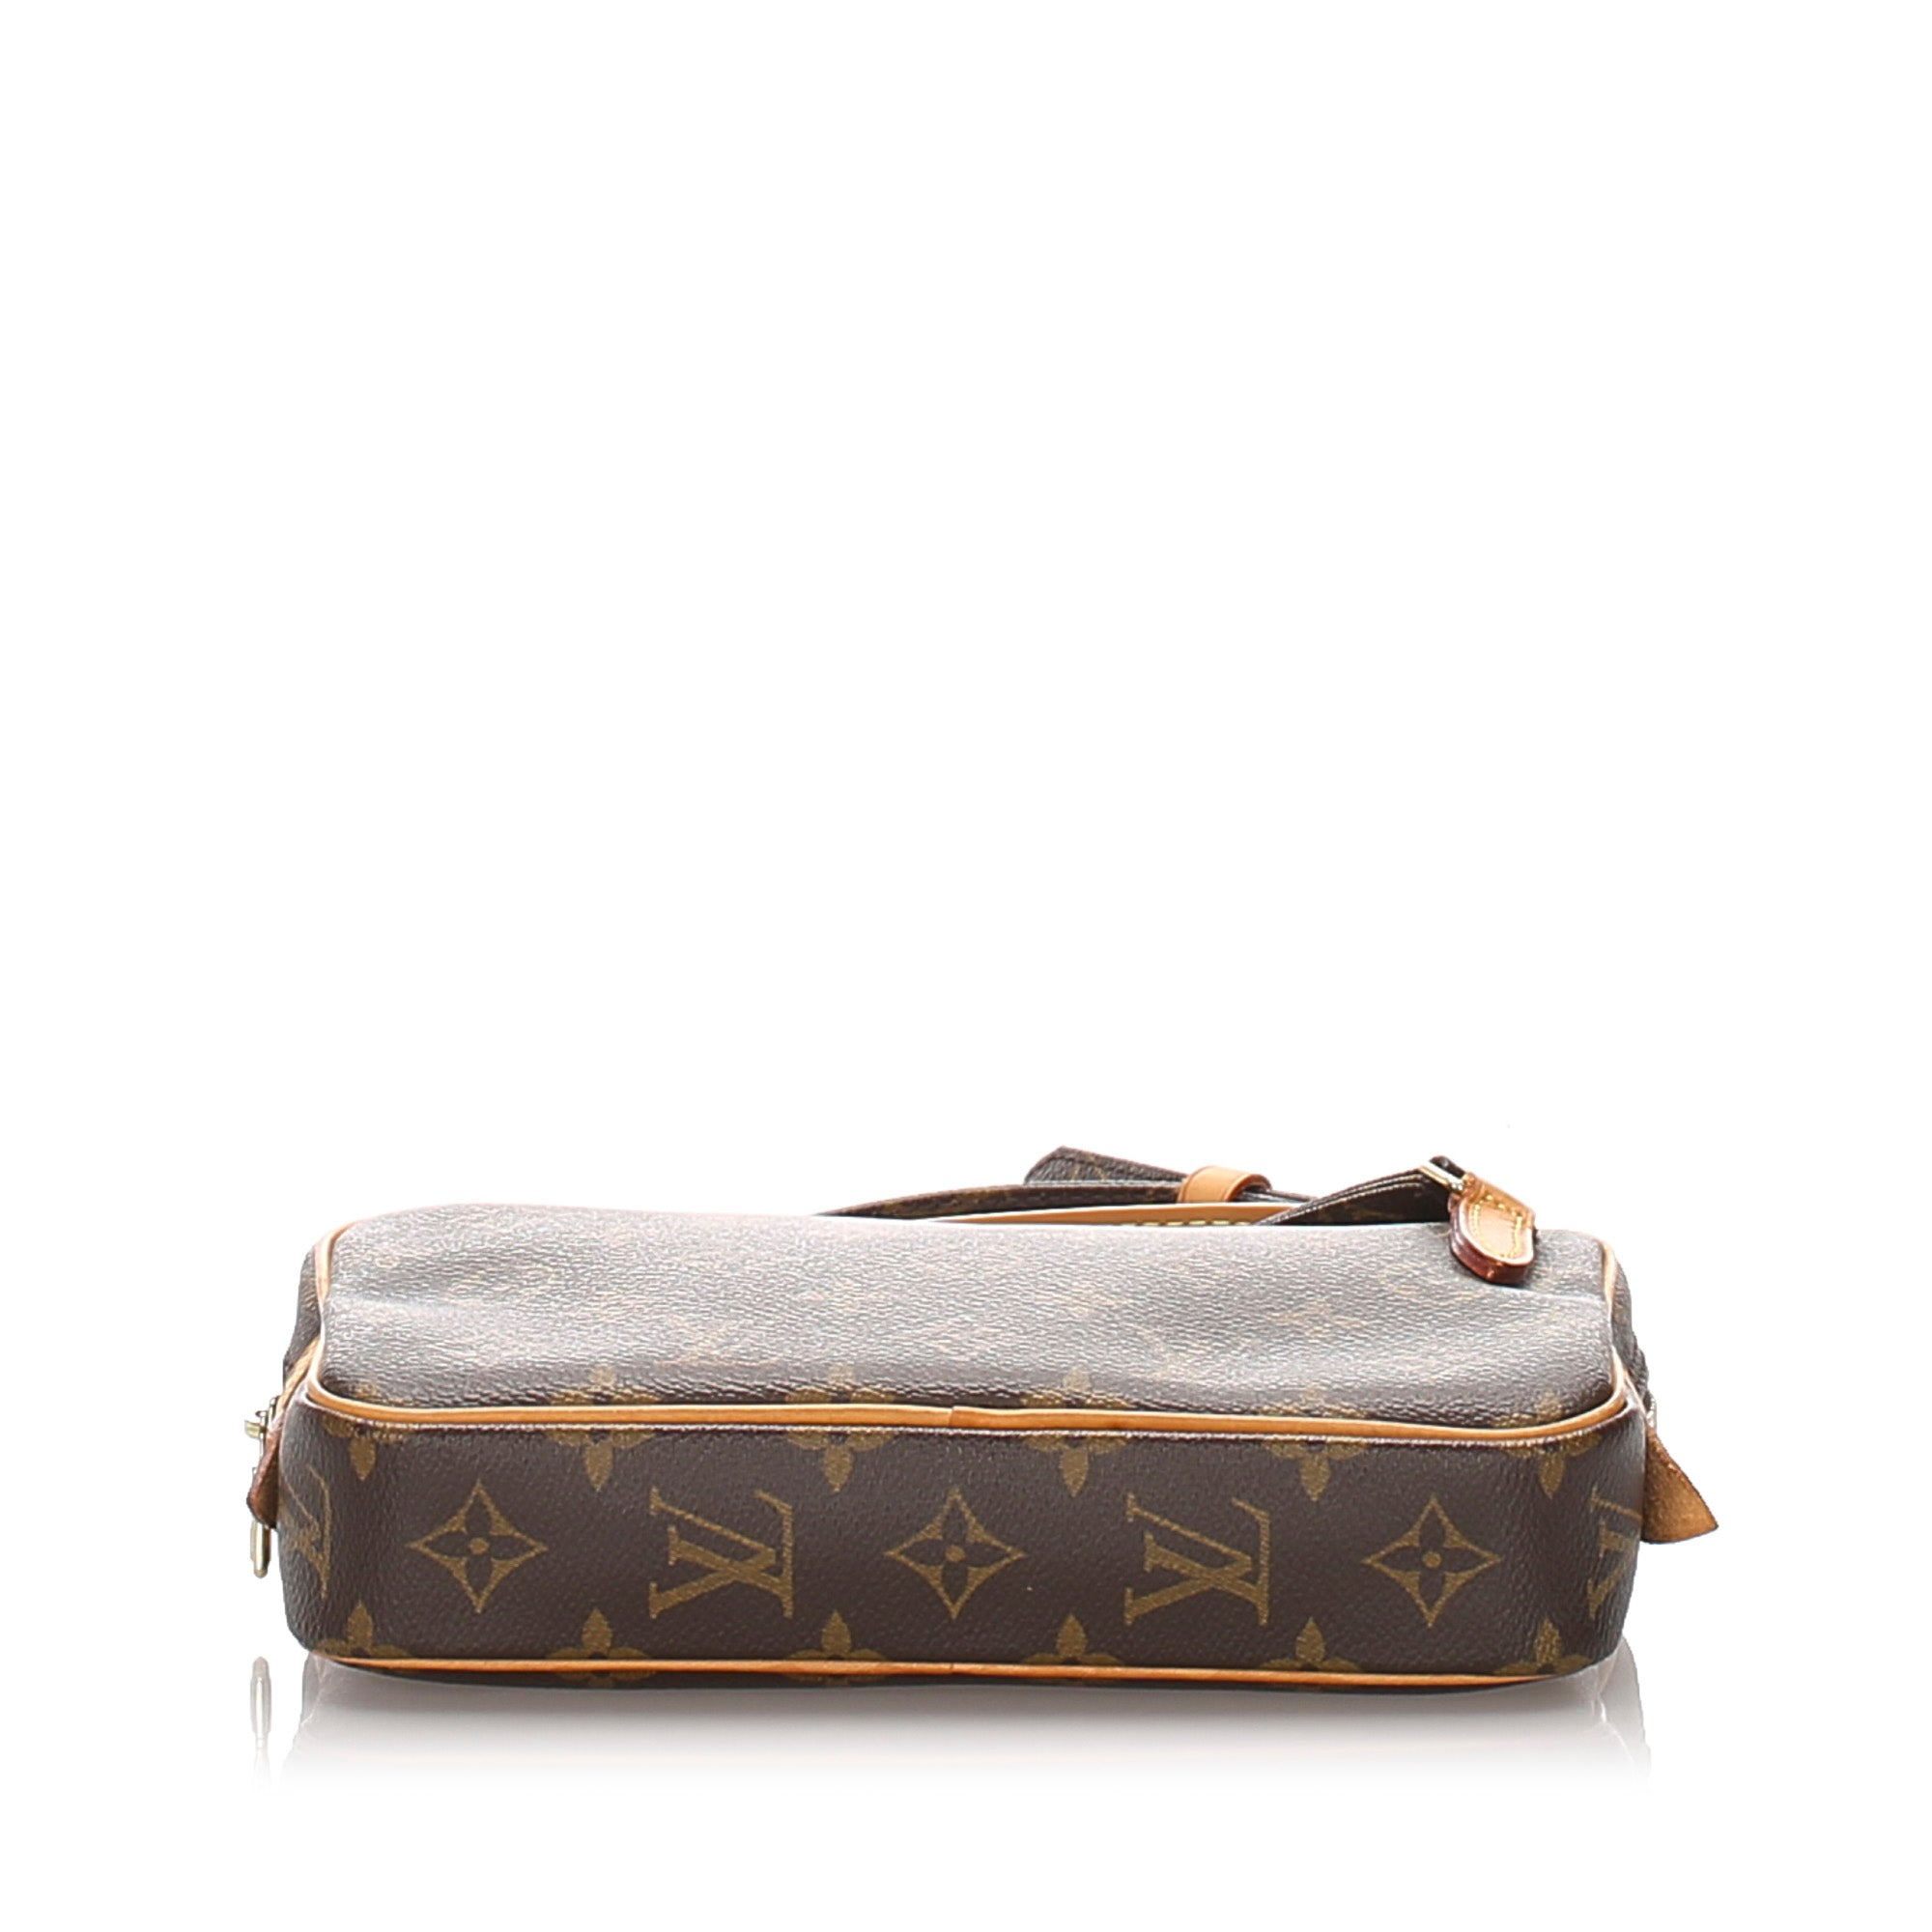 Louis Vuitton Brown Monogram Marly Bandouliere